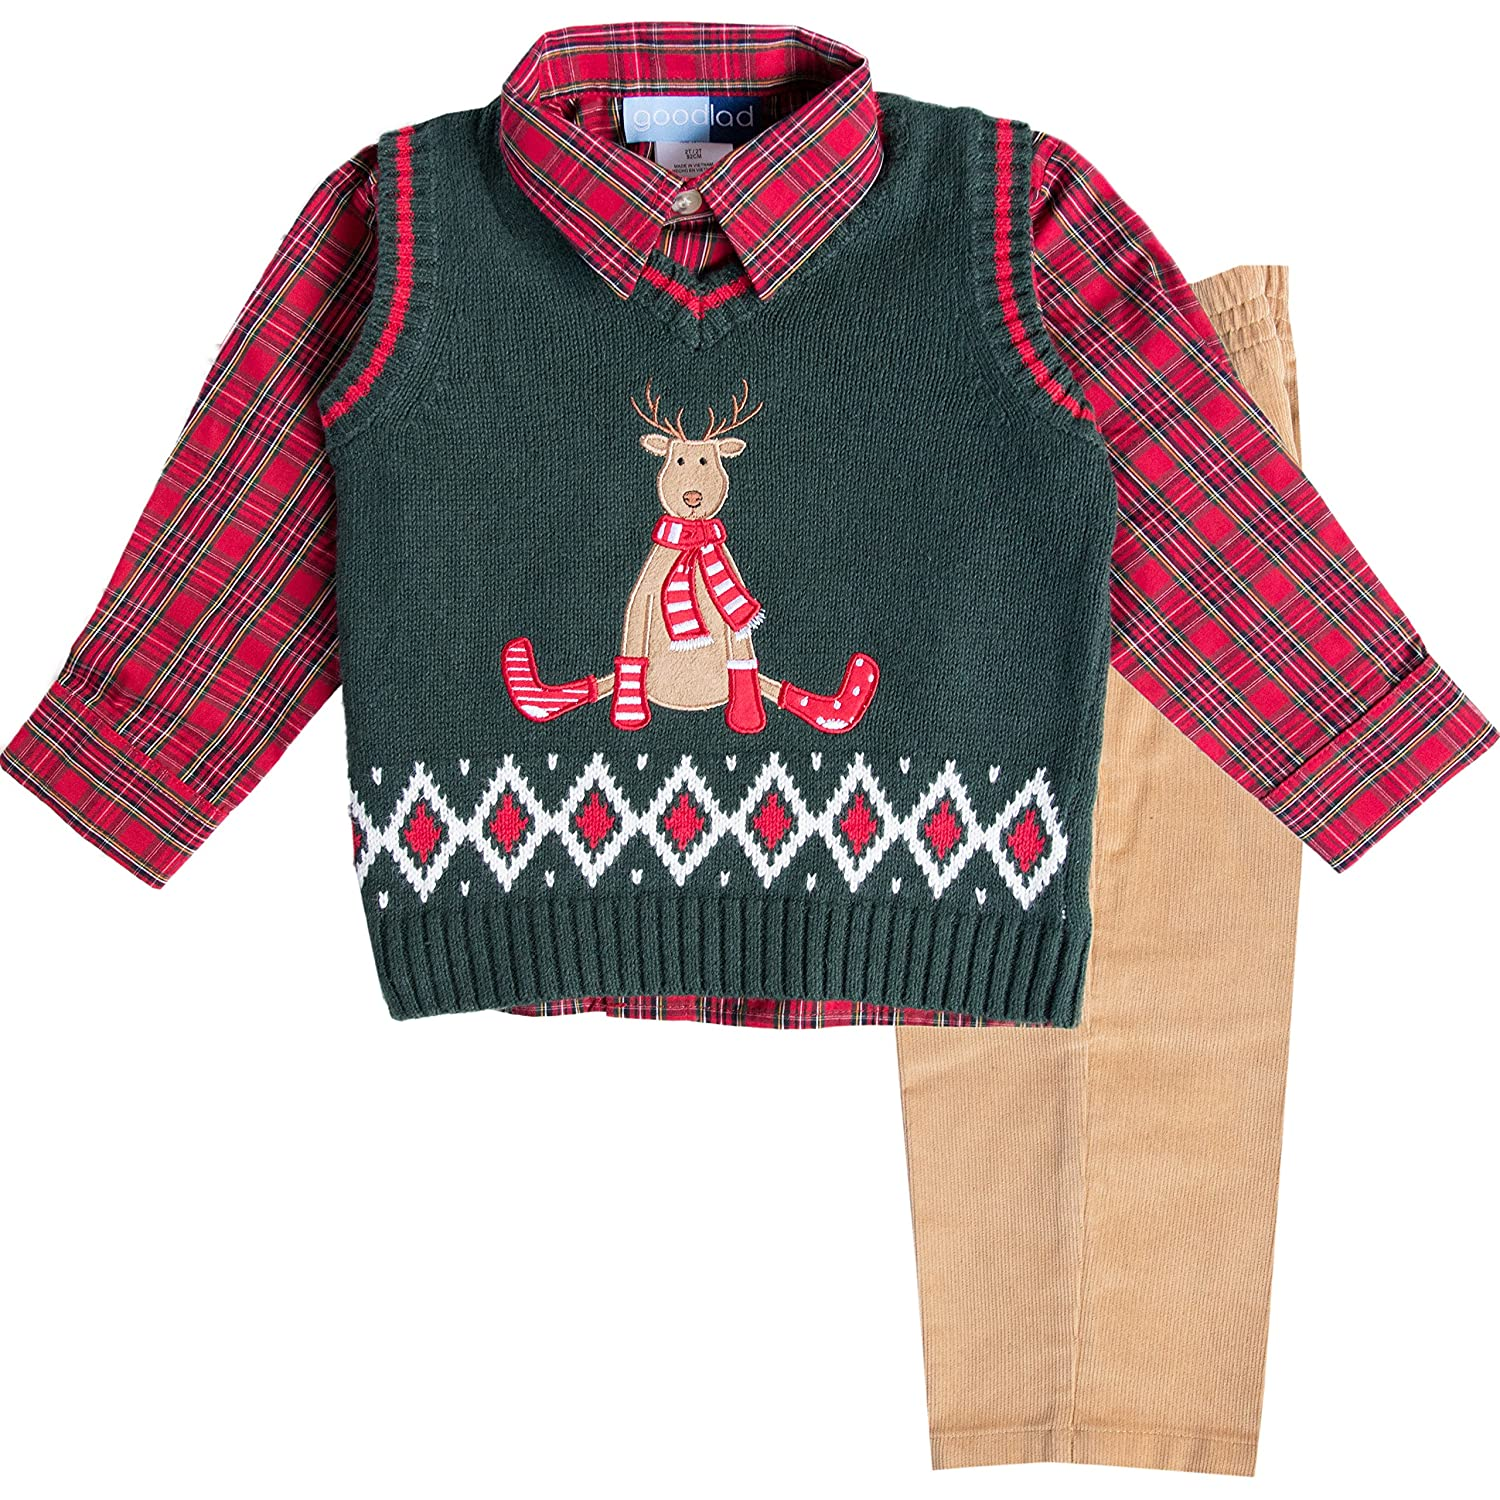 4a32750a109 Amazon.com  Good Lad Infant Boys Three Piece Green Reindeer Appliqued  Sweater Vest  Clothing